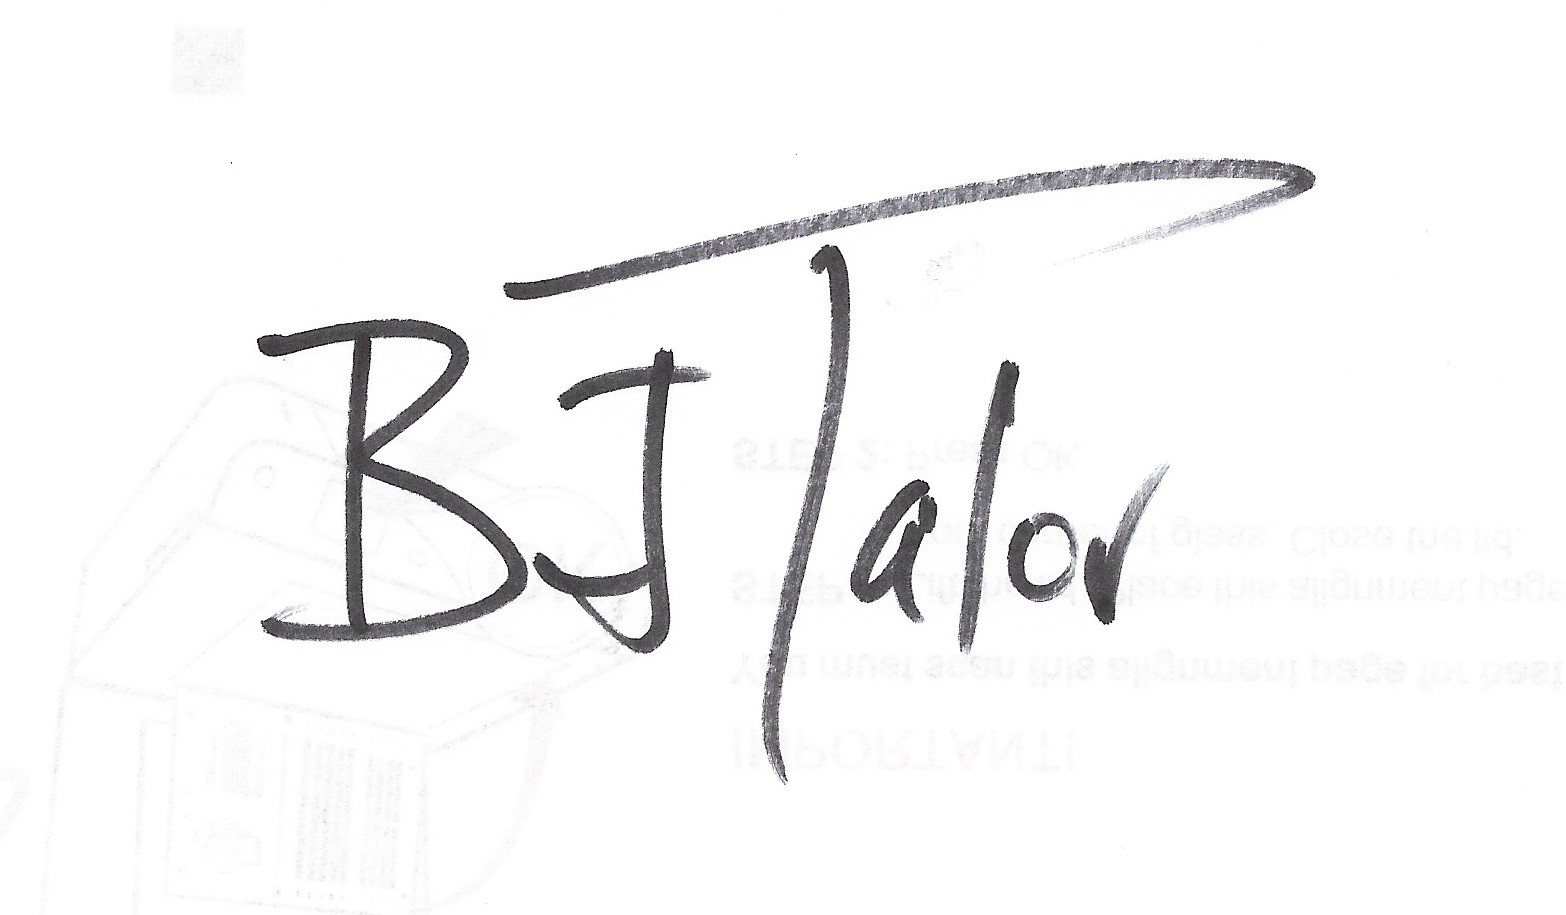 BJ Talor's Signature